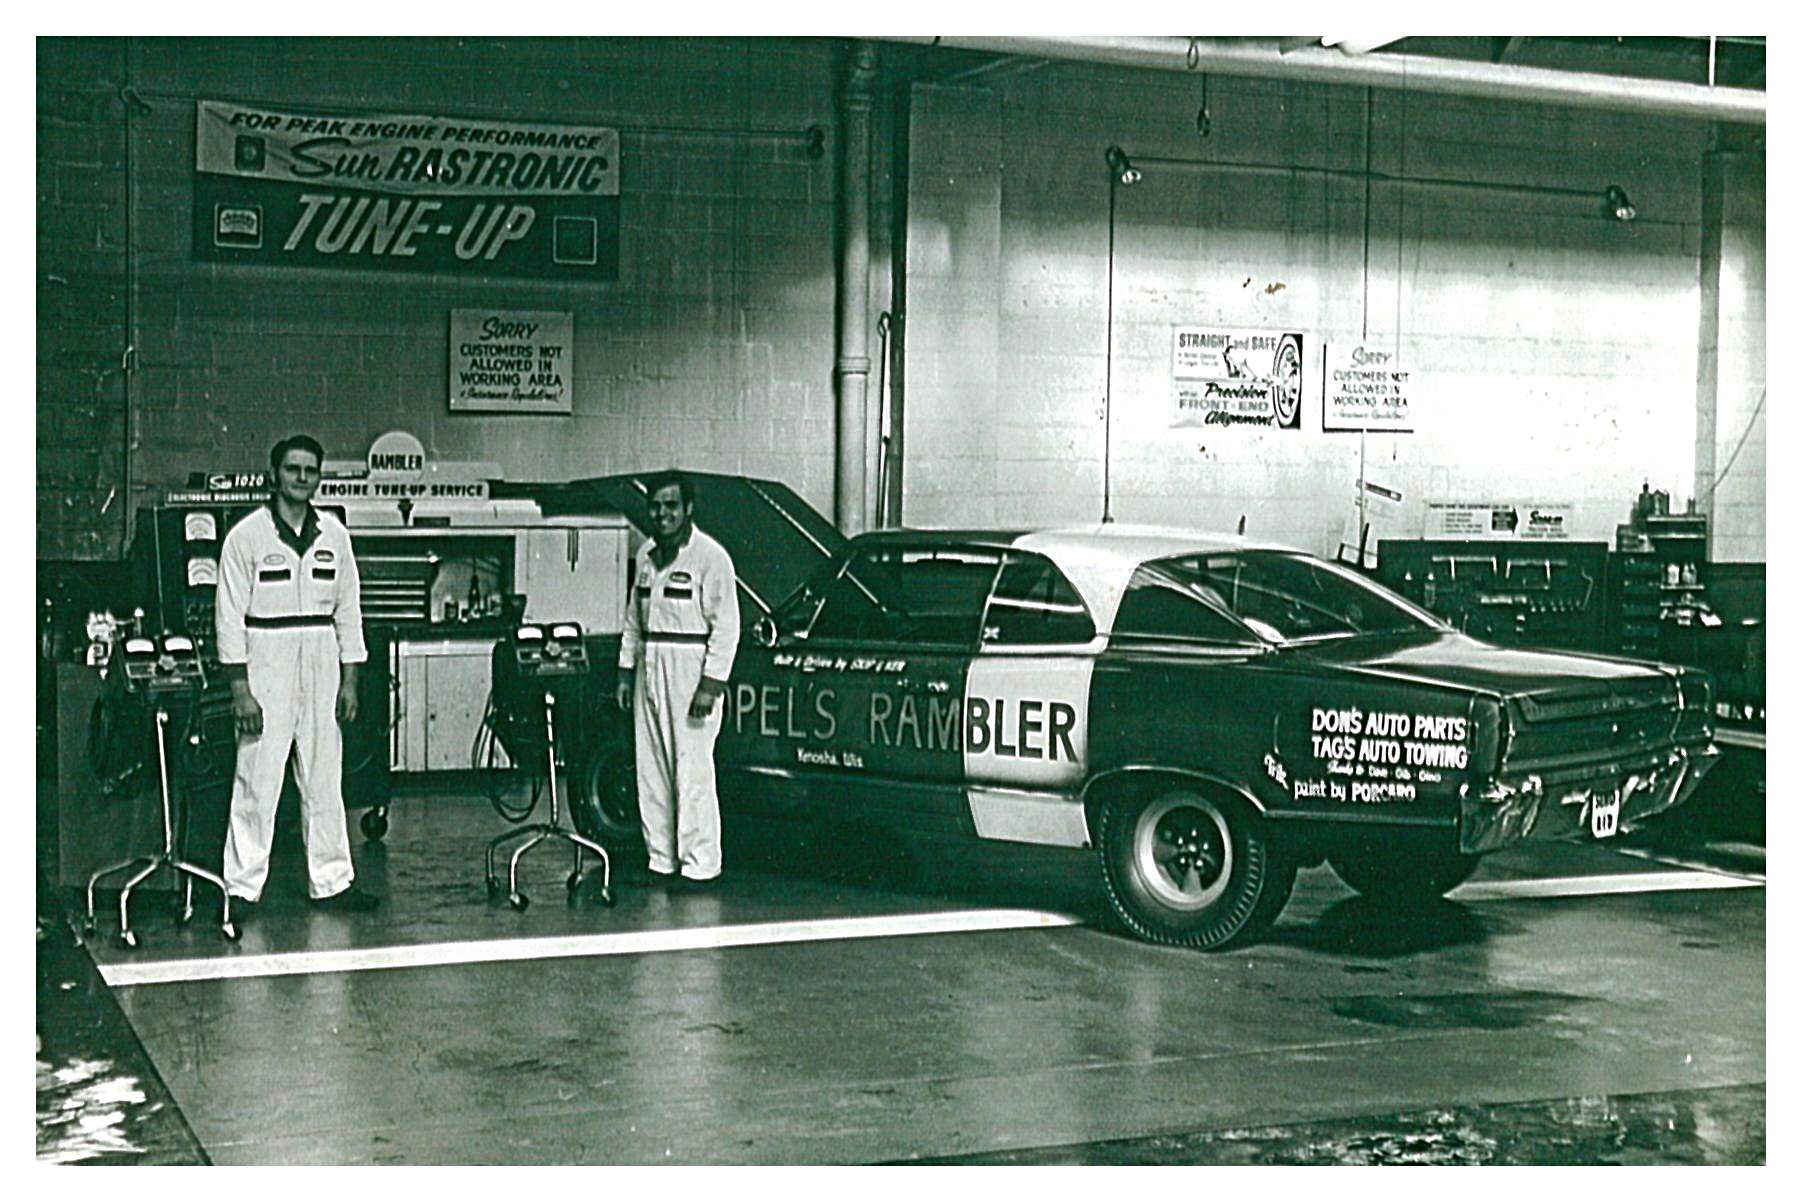 Topel Rambler Line Mechanic Bernie Pucci and Dave Graves pose alongside the dealership's 1967 Rebel Super Stocker while it is serviced. Note that the earliest version makes use of American mag wheels.